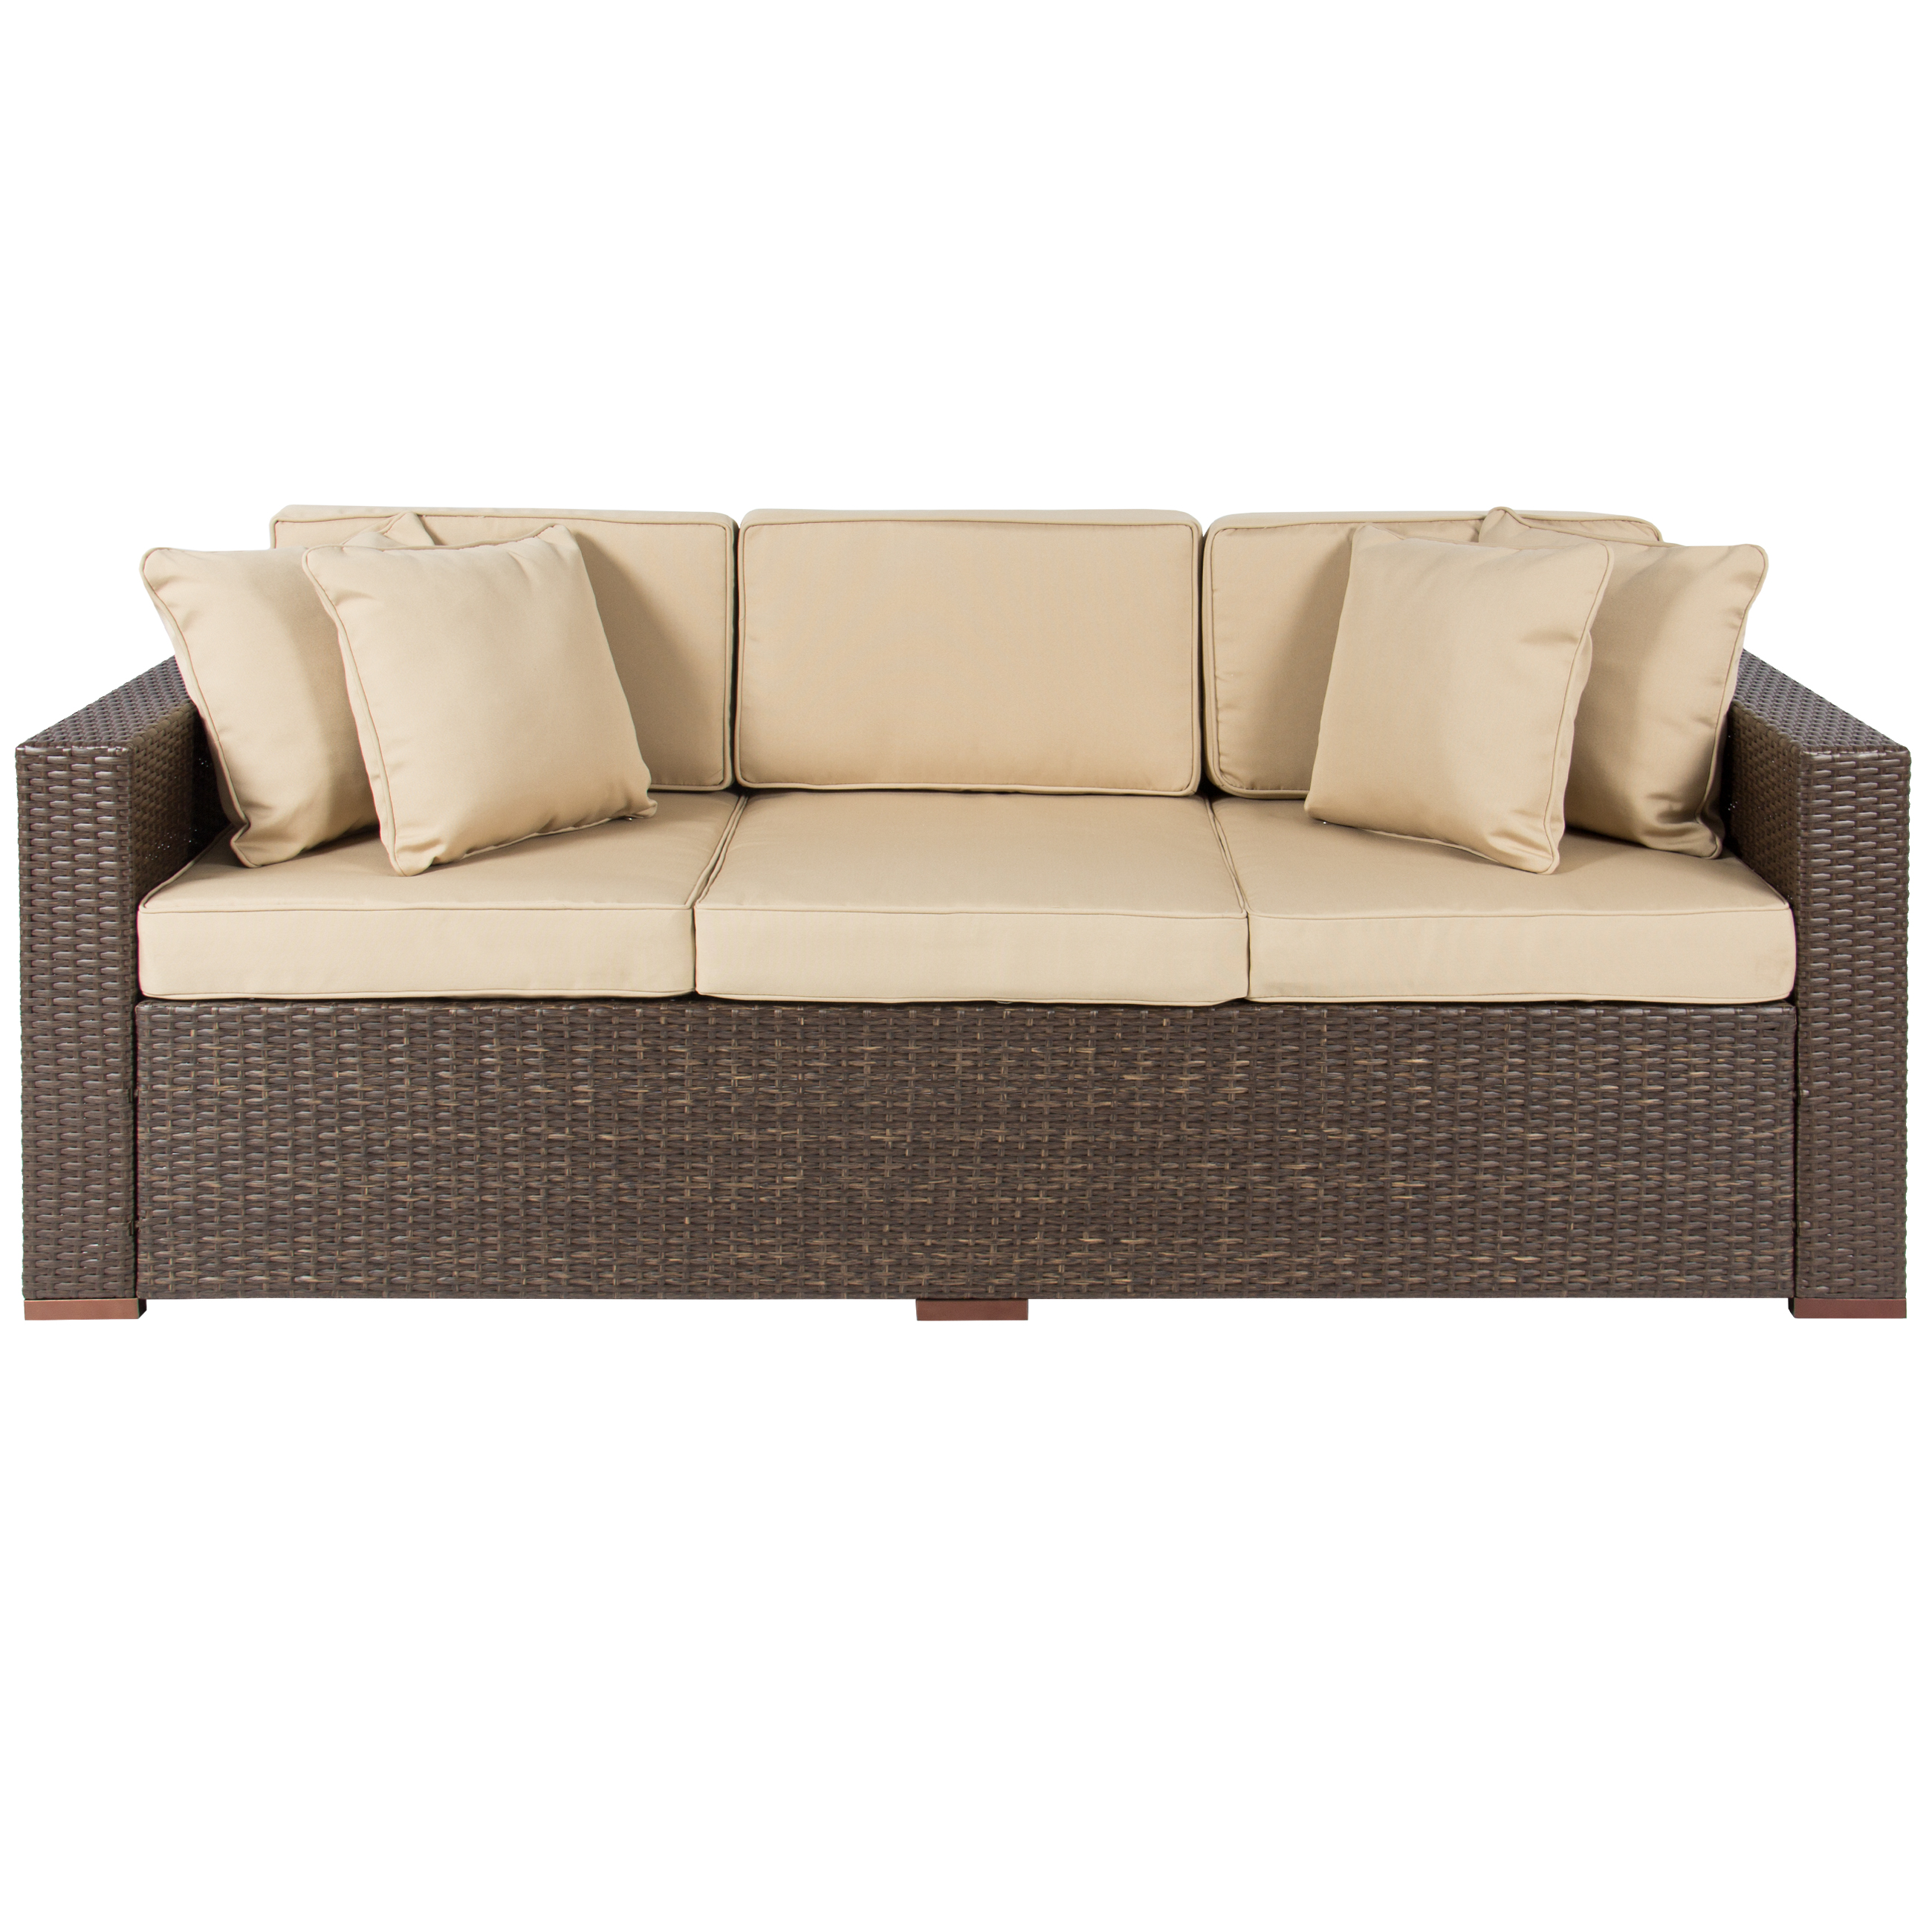 rattan outdoor sofa slipcover australia 3 seat patio better homes and gardens azalea ridge